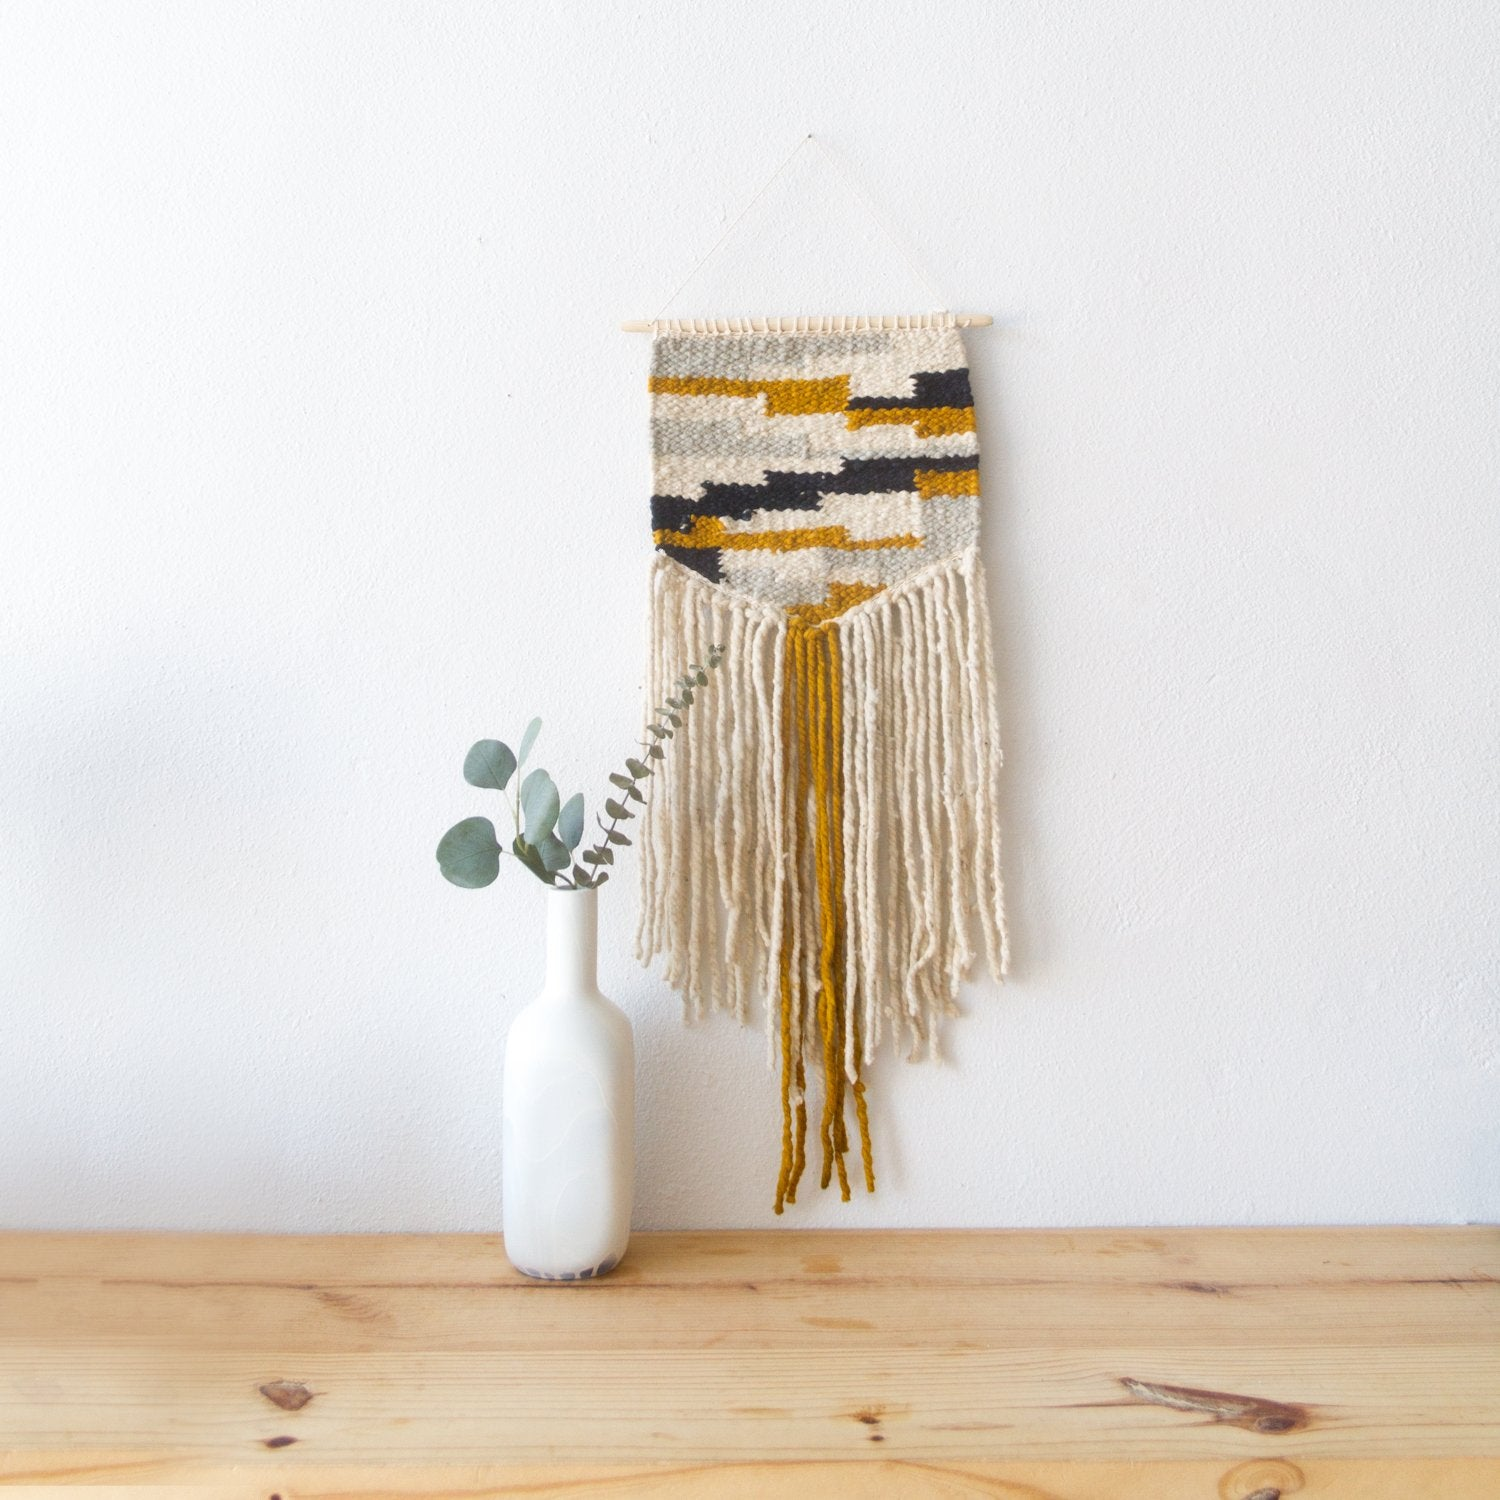 Hand-Woven Wall Hangings